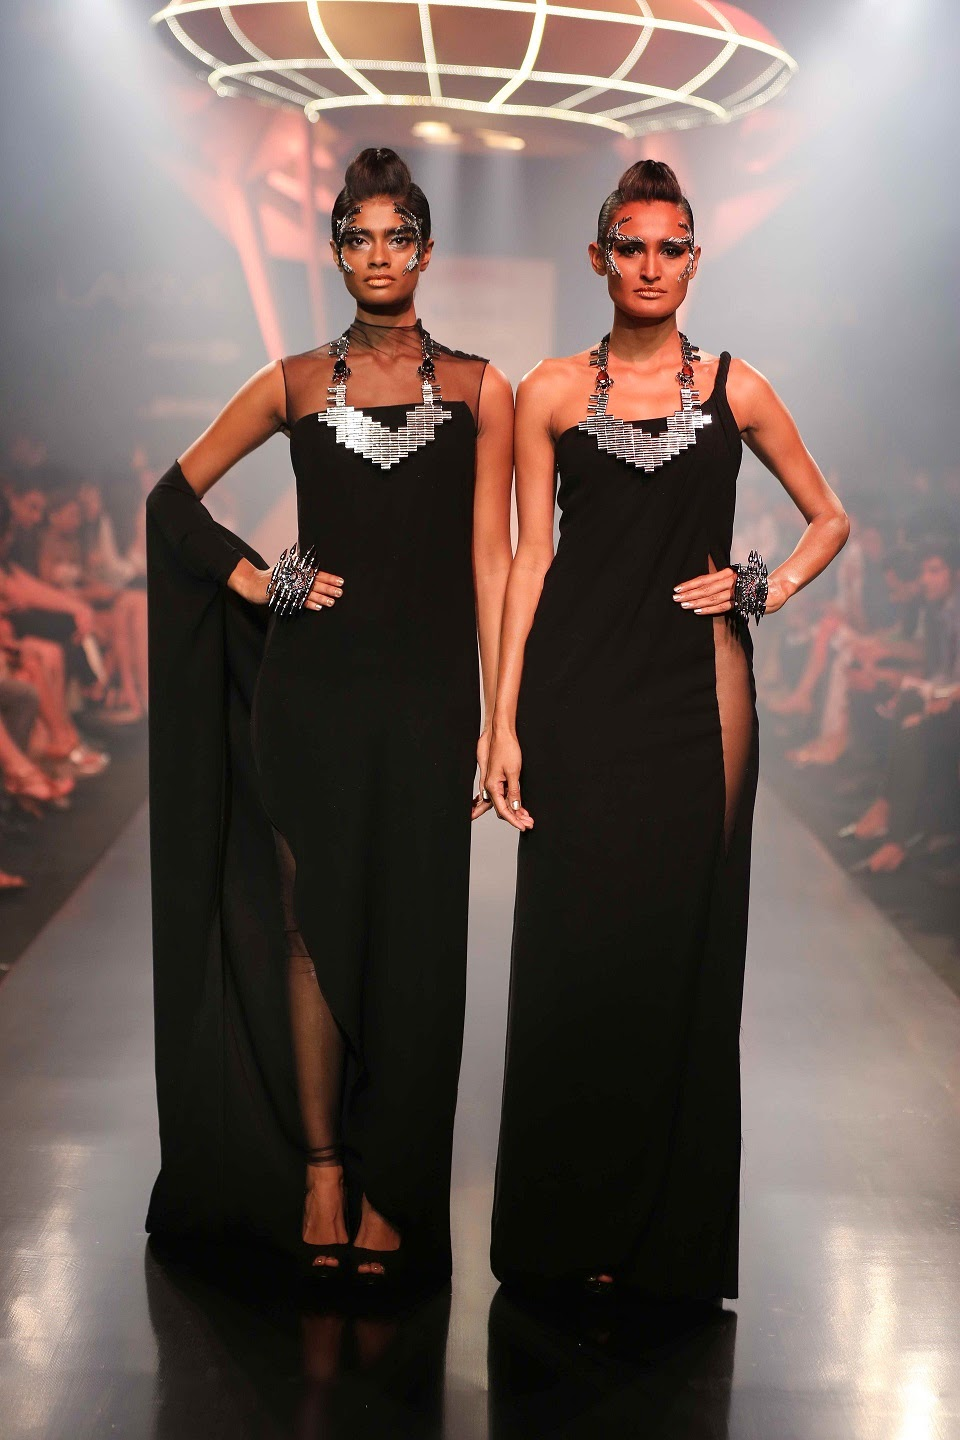 DHL presented the stunning jewellery by Mawi Keivom and the sensational Space Age collection from Gaurav Gupta to close Day Two at Lakmé Fashion Week Summer/Resort 2014. Combing these two haute couture brands of jewellery and garments, the show was a visual treat for the senses. A lit space ship suspended from the ceiling slowly rose to the top at the start of the show, while abstract shapes hung at ramp entrance. To the eerie sounds of a very futuristic symphony, through clouds of smoke, the ultra glam journey into fashionable space started for the audience, as pairs of models in tonal hues but varying designs, decked in outstanding jewellery strutted down the ramp.